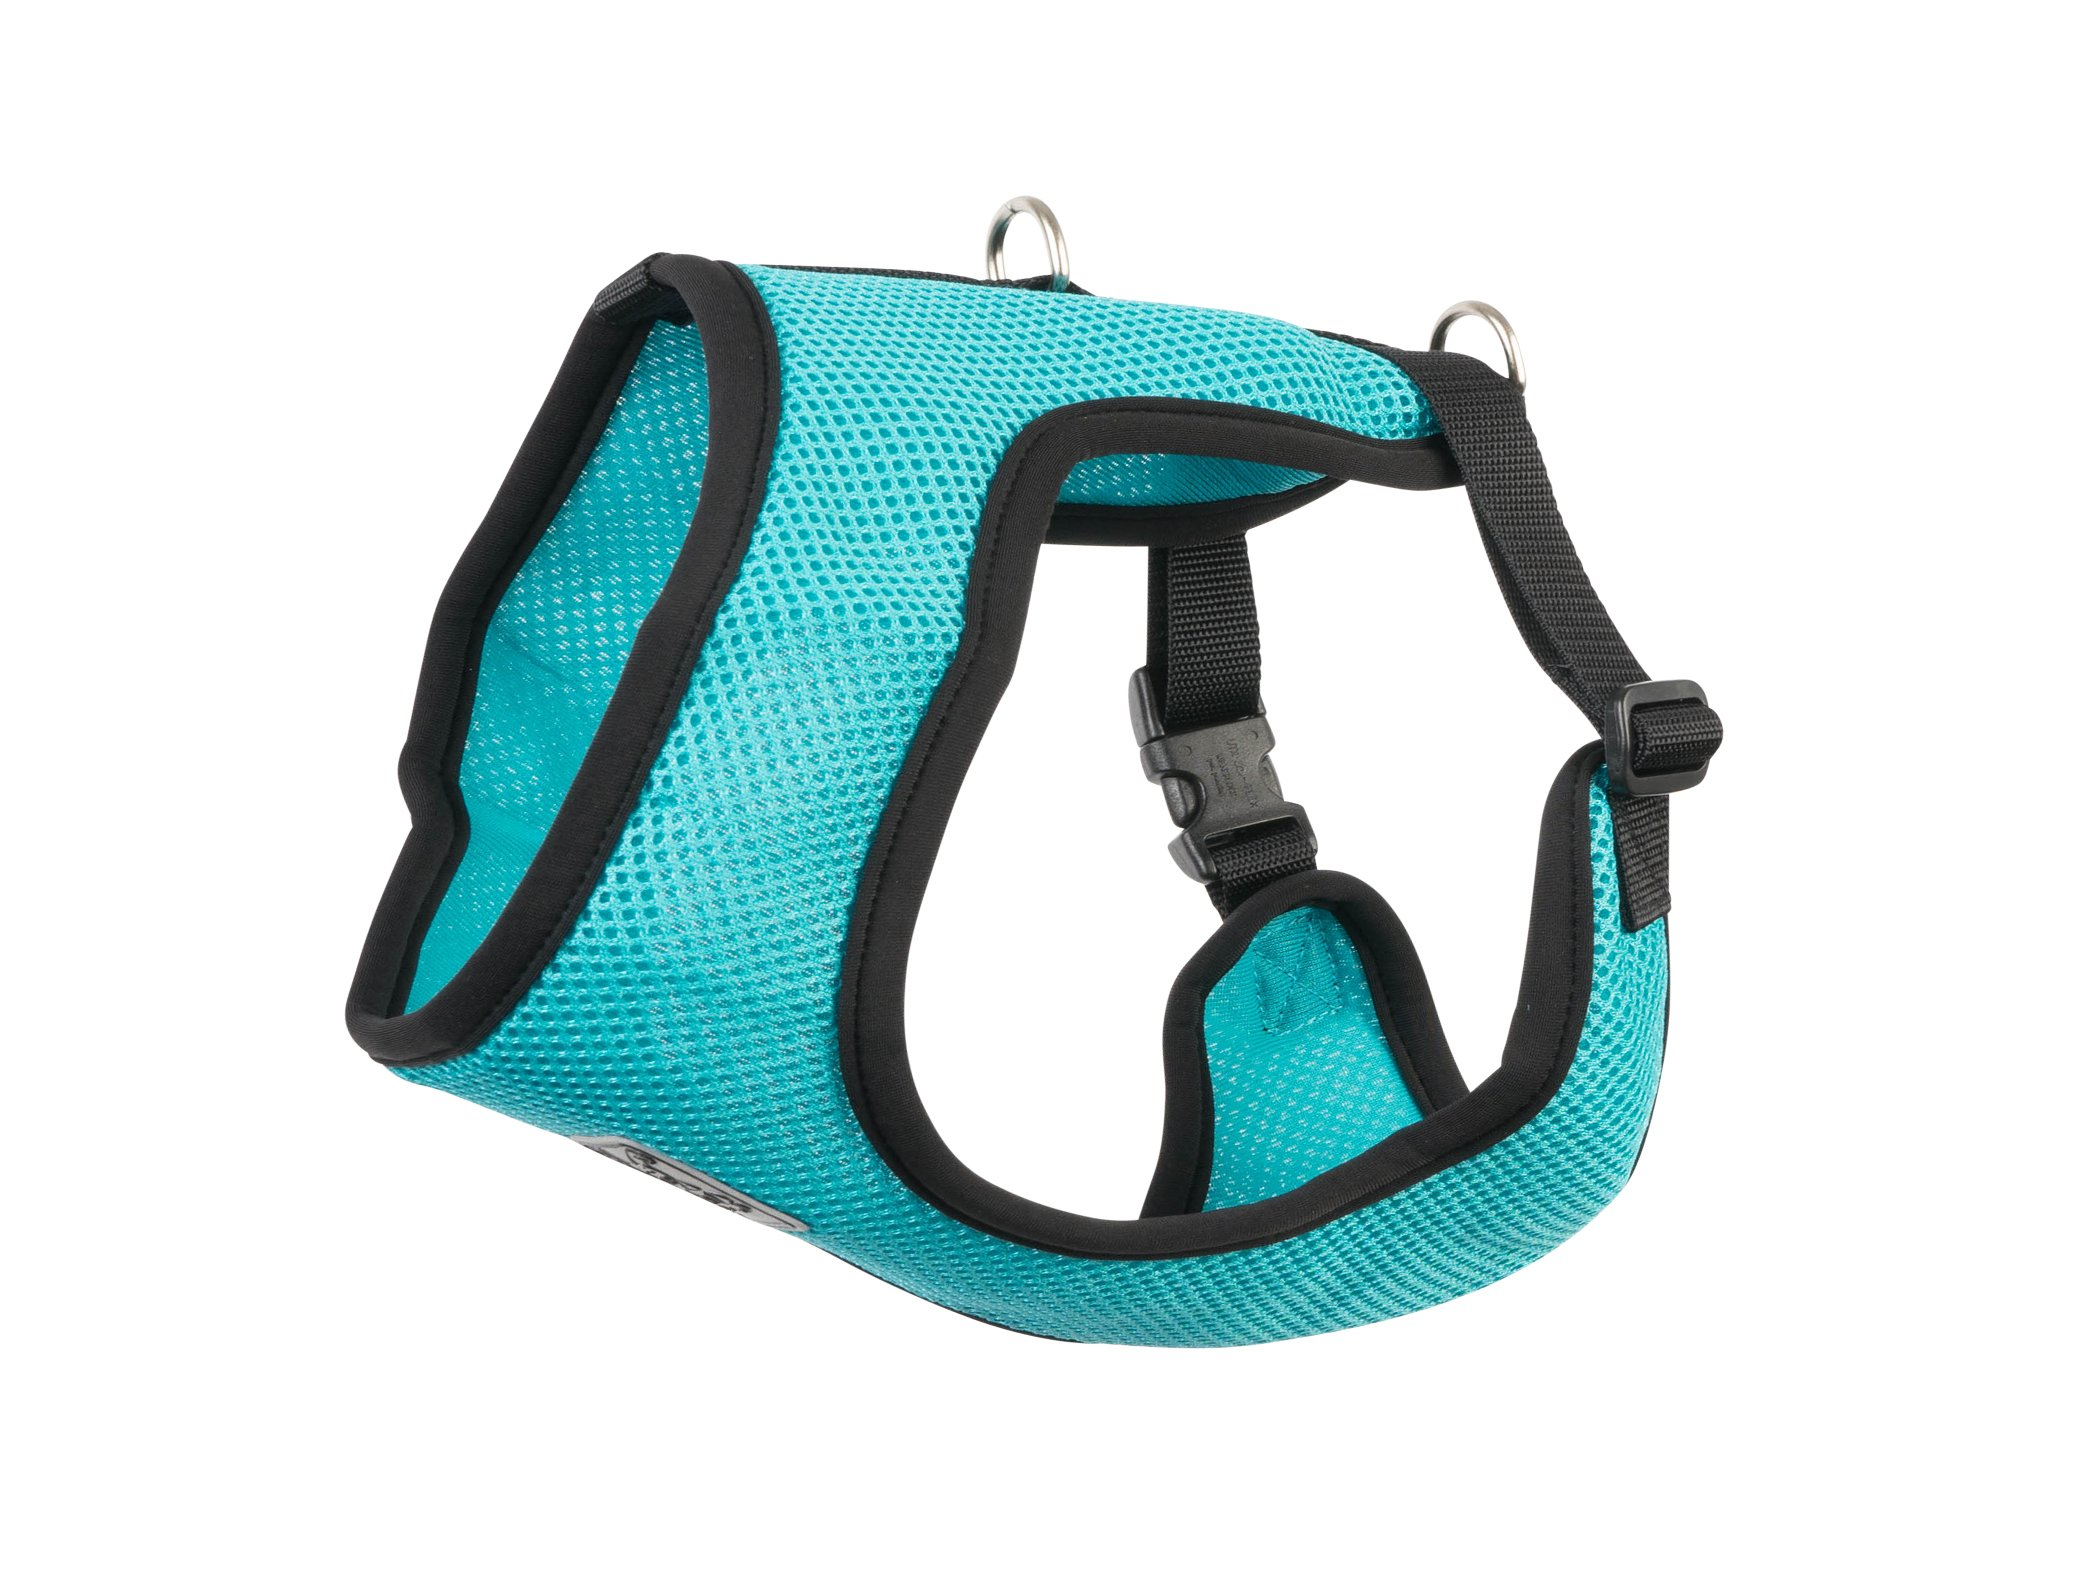 RC Pet Products Cirque Soft Walking Dog Harness, 3X-Small, Teal